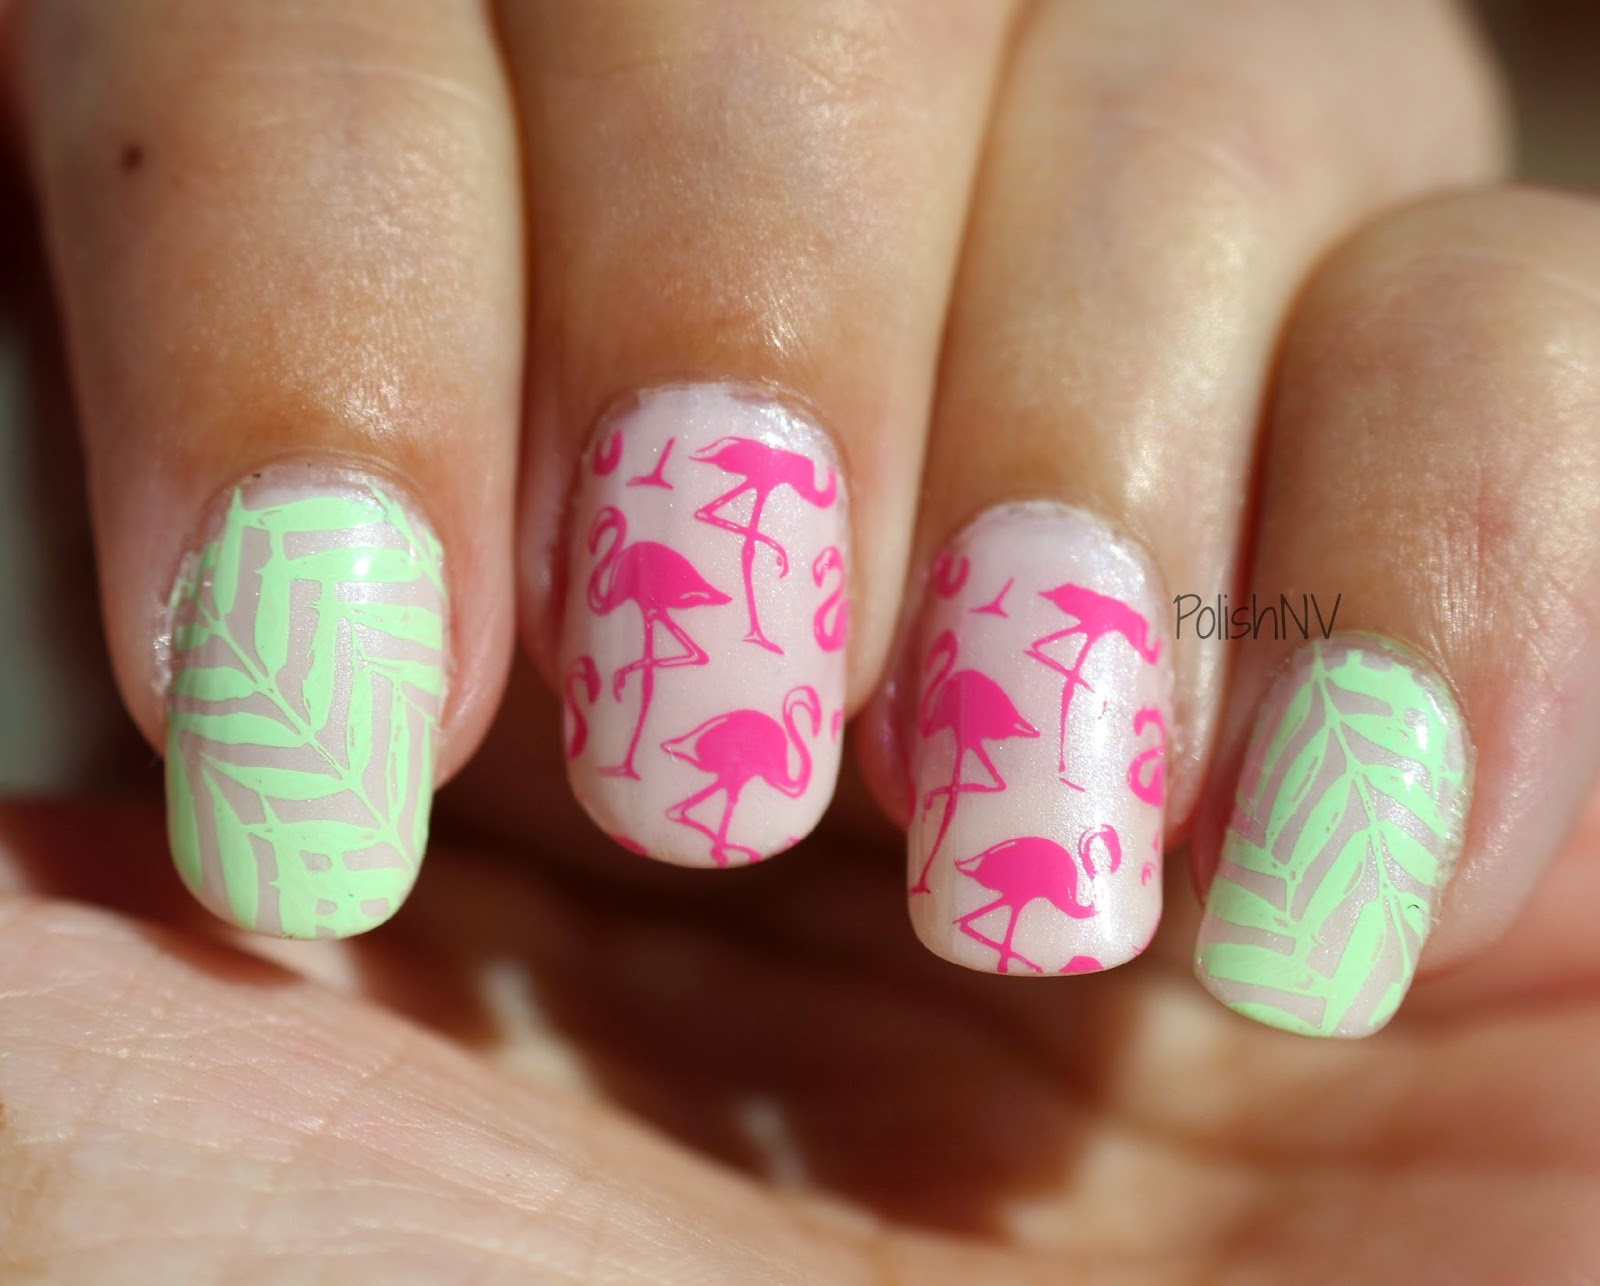 Stamping with MoYou Tropical plates and Rica Polishes